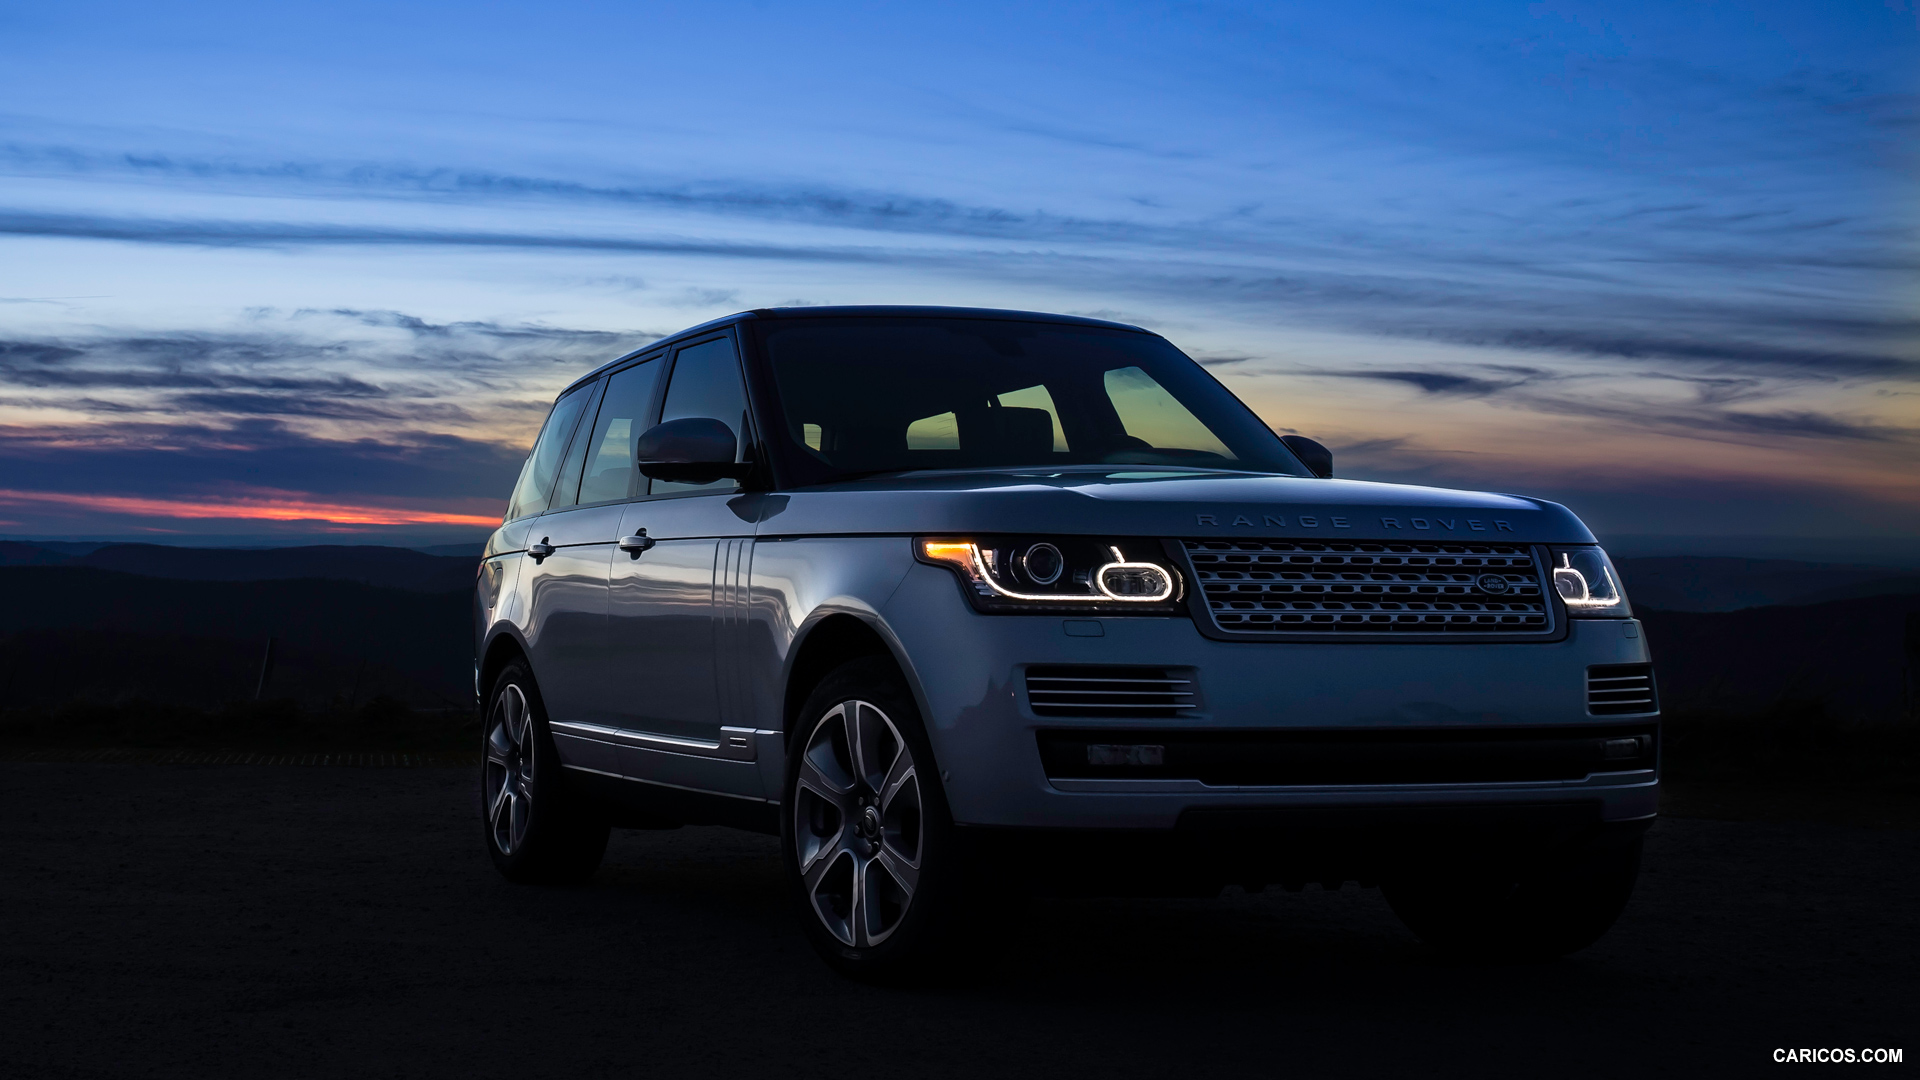 1920x1080 - Range Rover Wallpapers 20